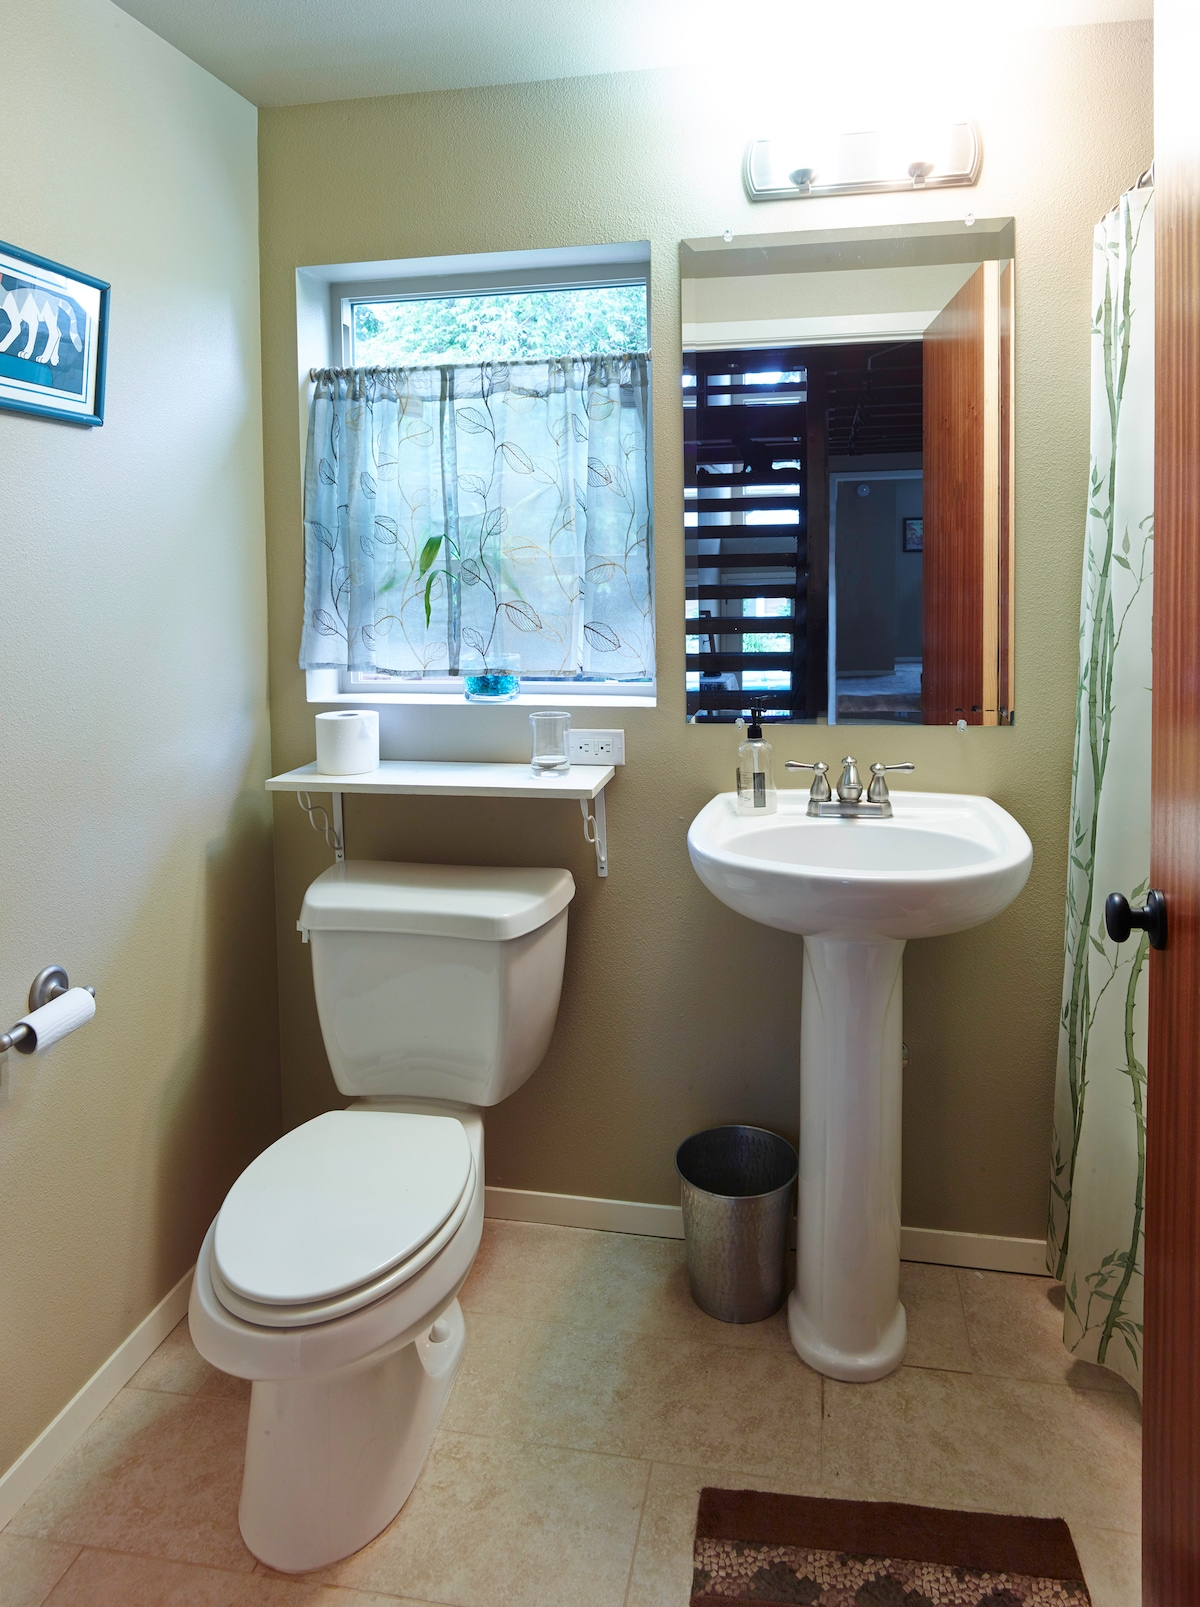 your very own bathroom!